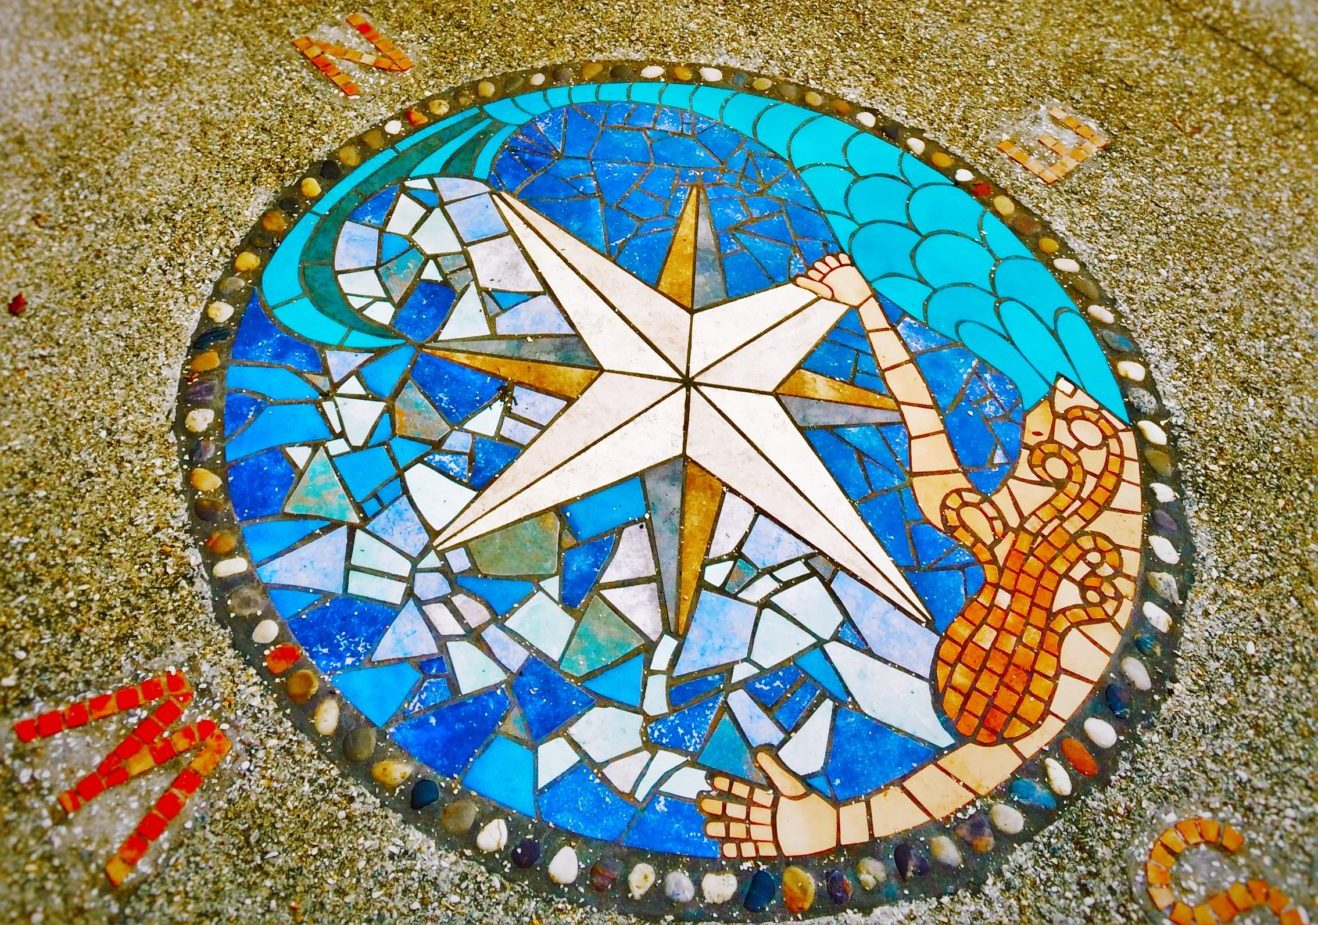 Mosaic Compass With Octopus At Pirate Museum St Augustine FL - Pirate museums in the us